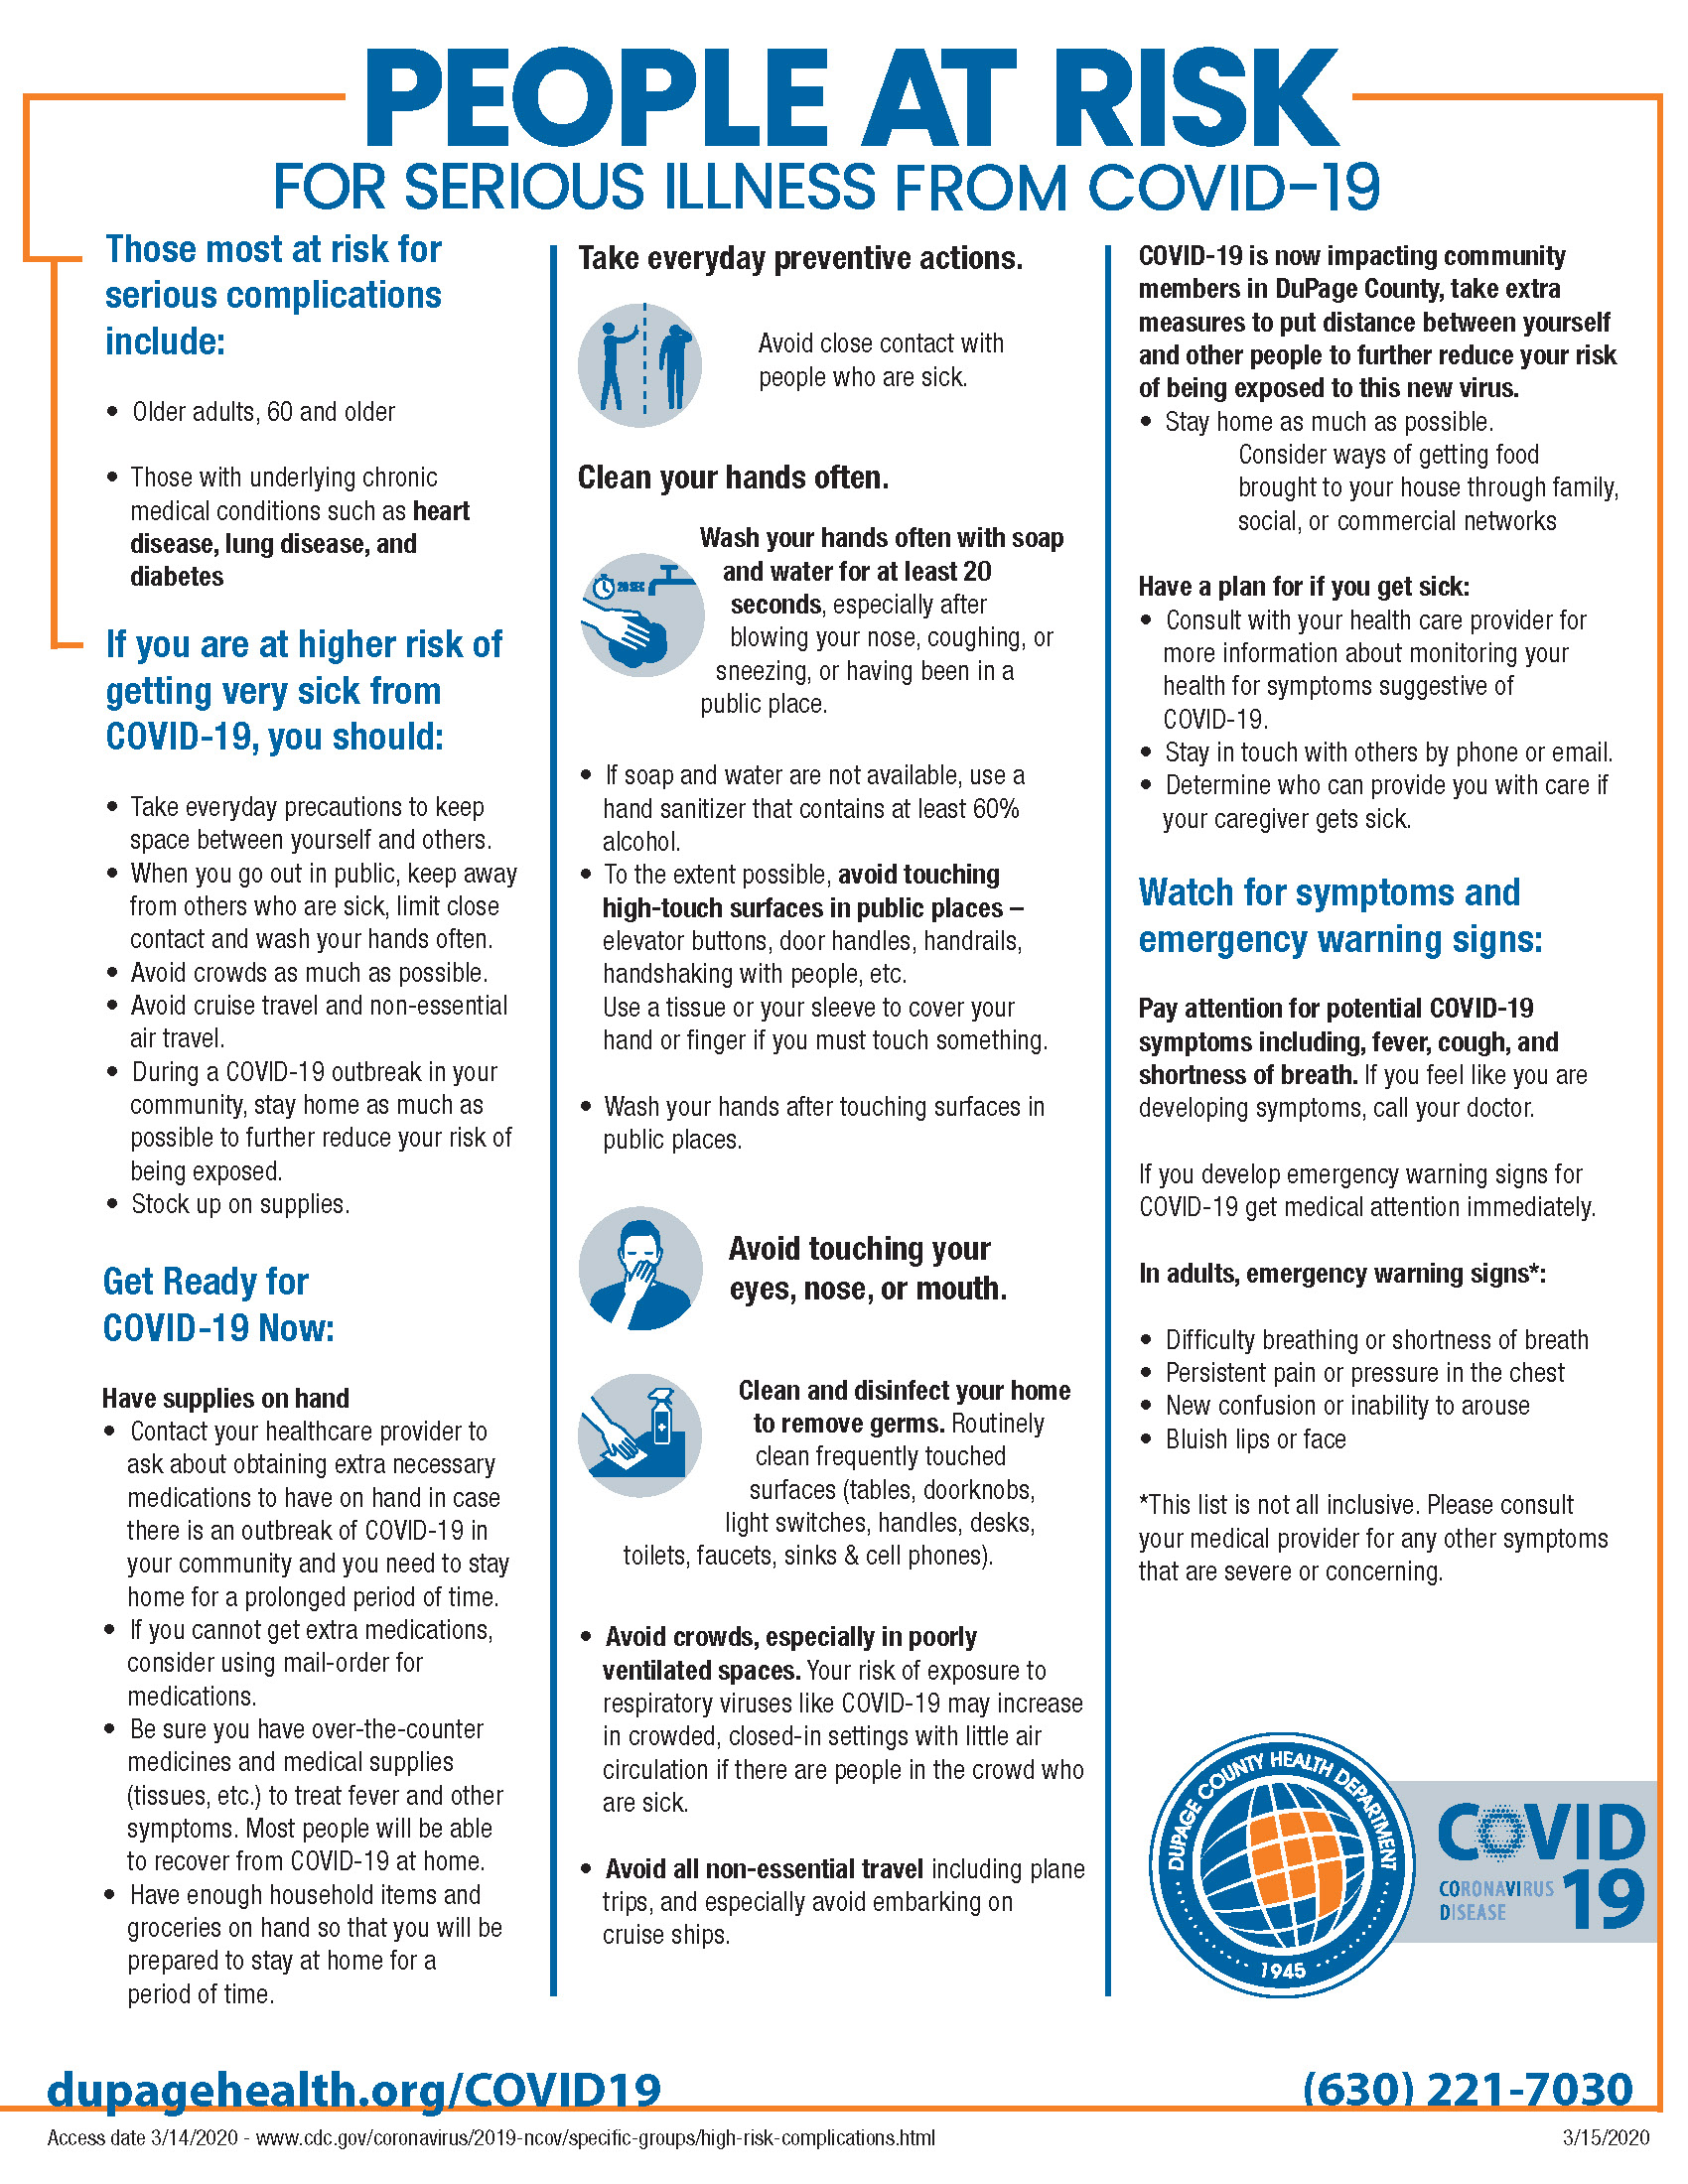 DCHD - COVID-19 People at Risk for Serious Illness (3-16)